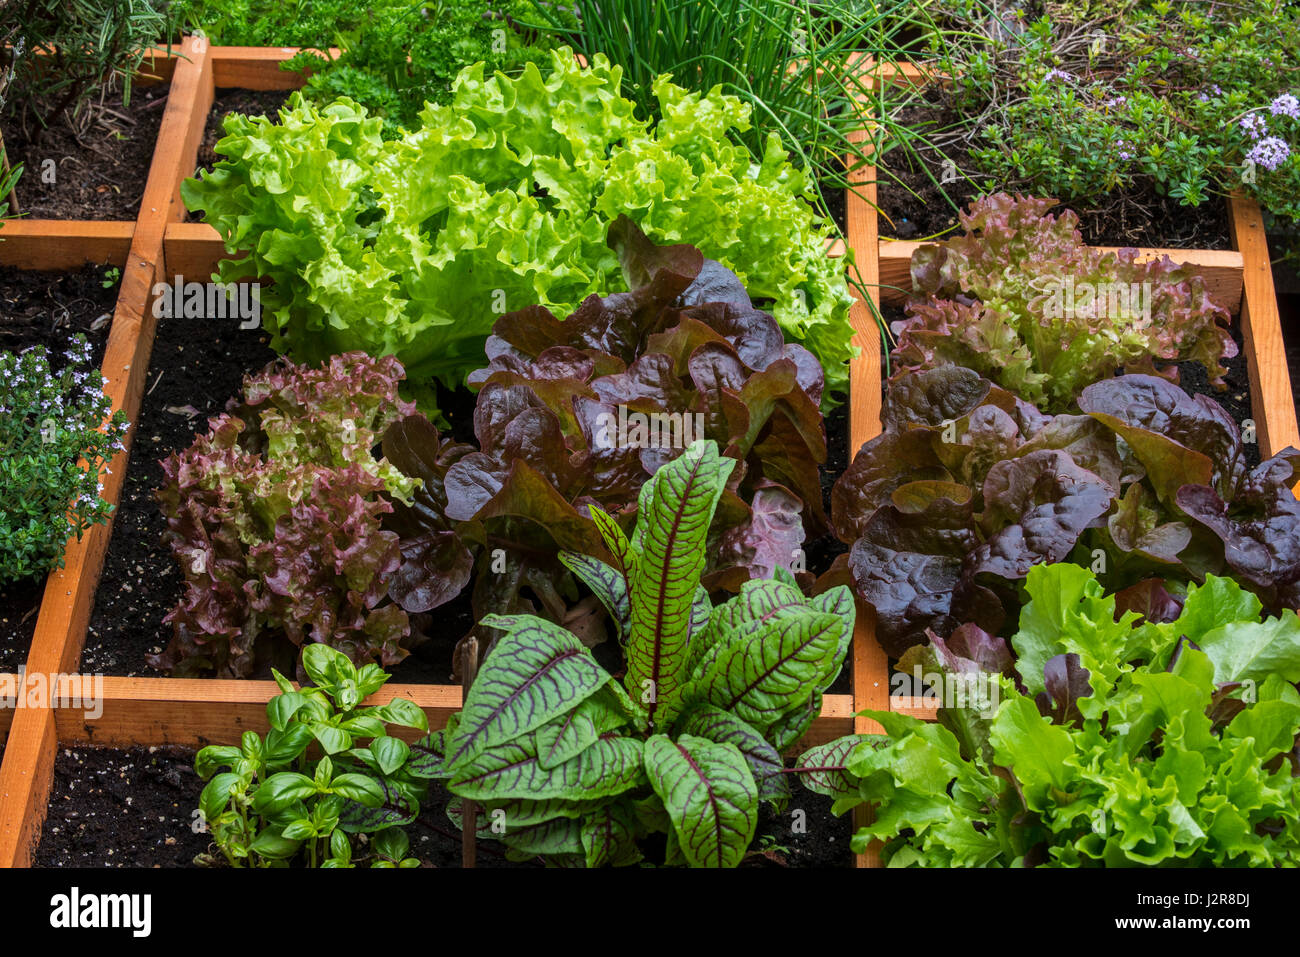 Square foot garden showing different species of lettuce, herbs and vegetables in wooden box - Stock Image